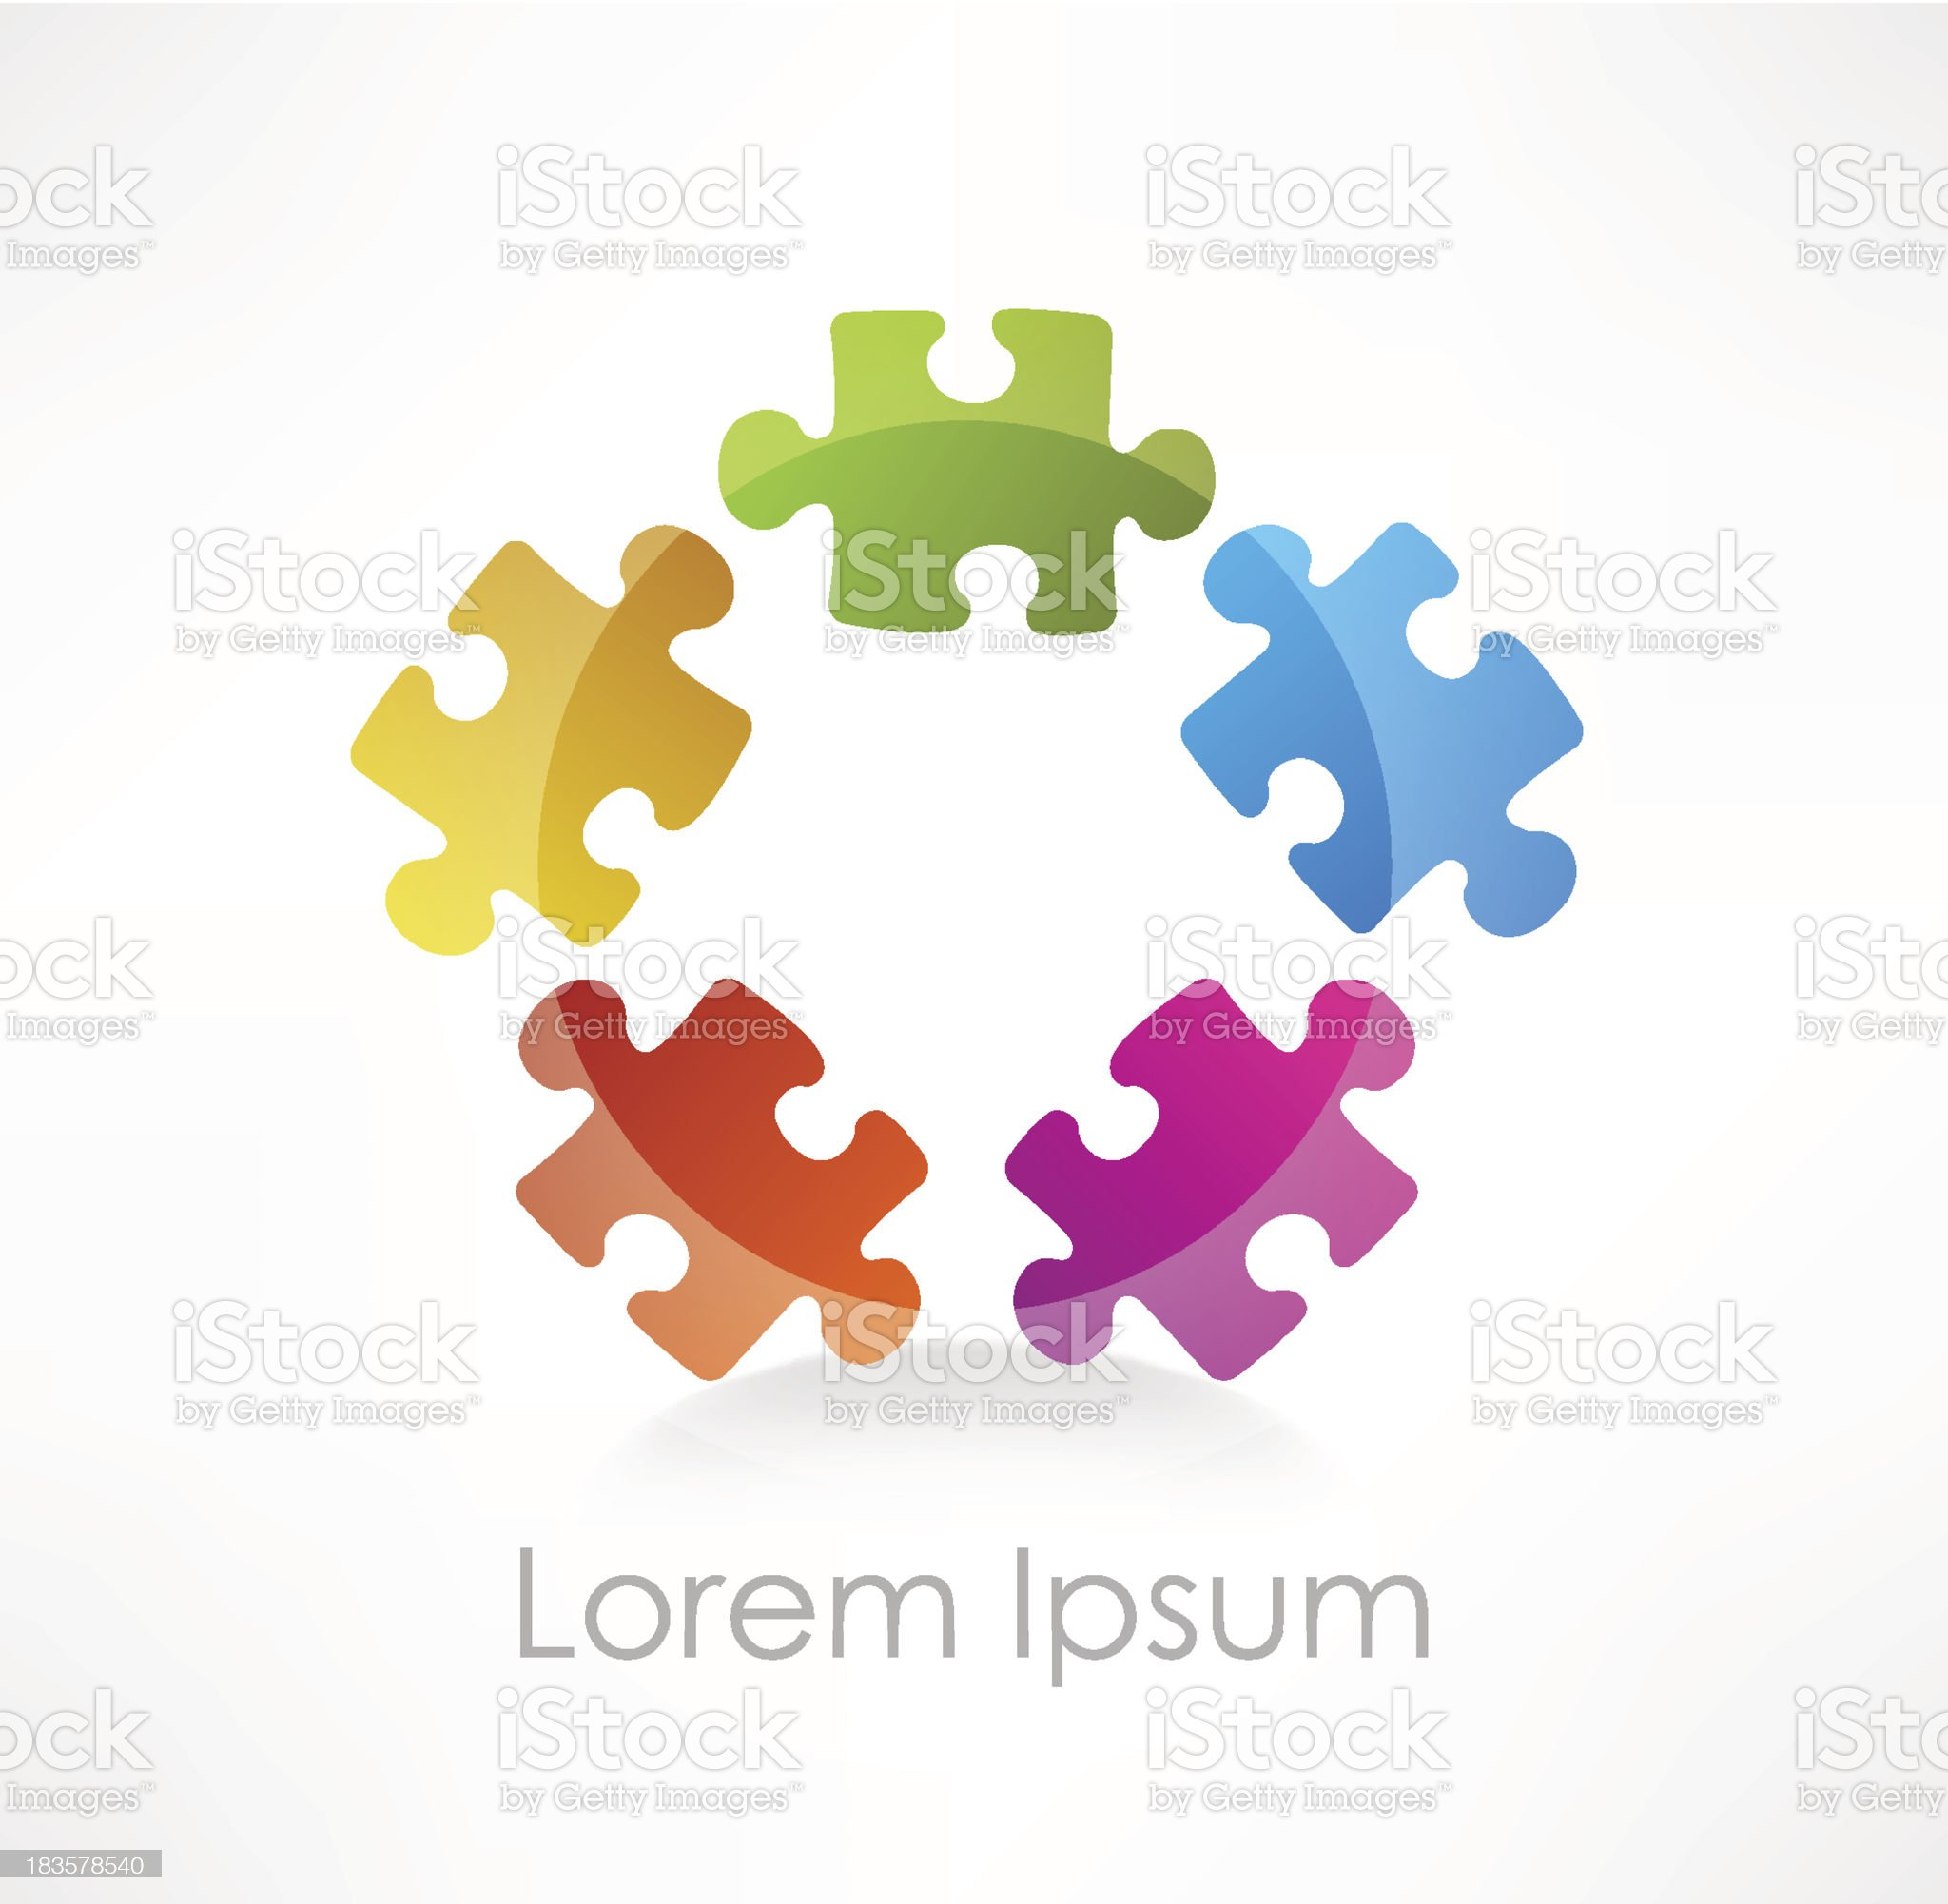 Colorful puzzle piece vector icon royalty-free stock vector art